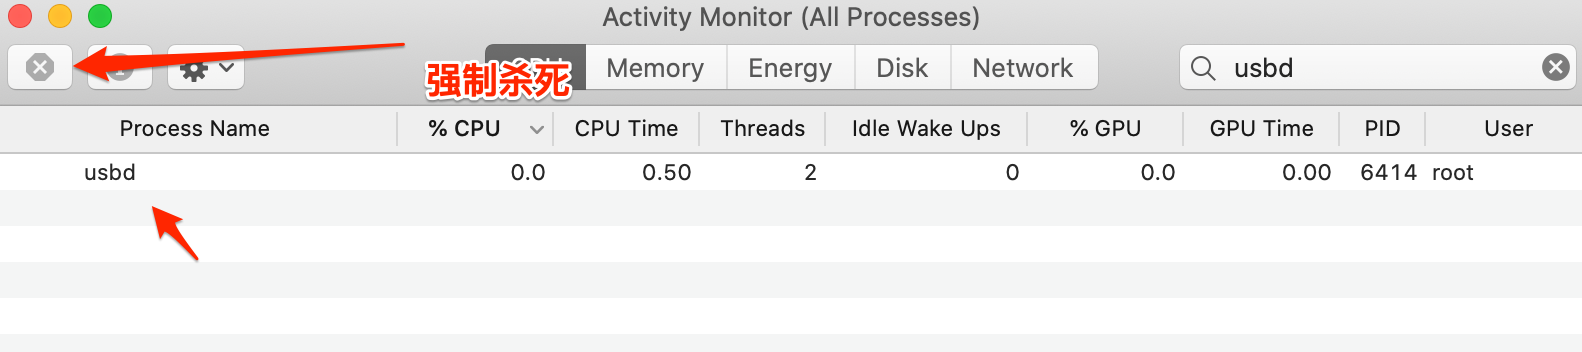 Activity_Monitor__All_Processes_.png